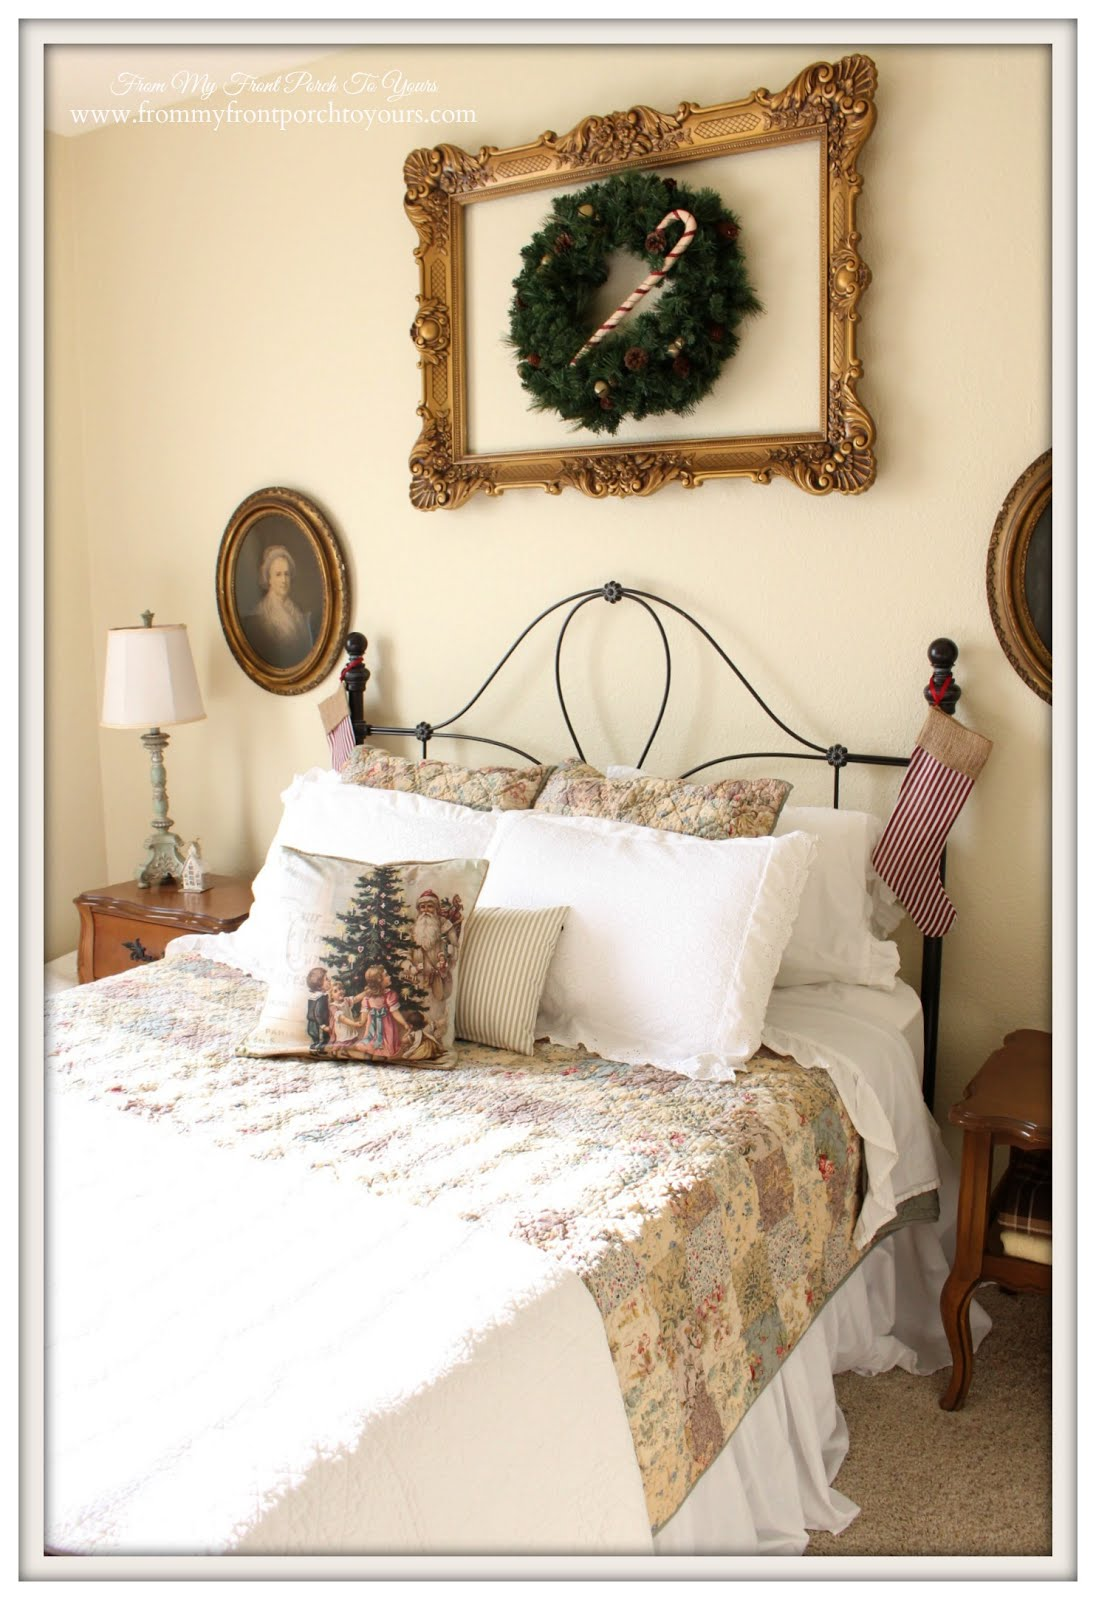 From My Front Porch To Yours: Simple Touches of Christmas- Guest ...